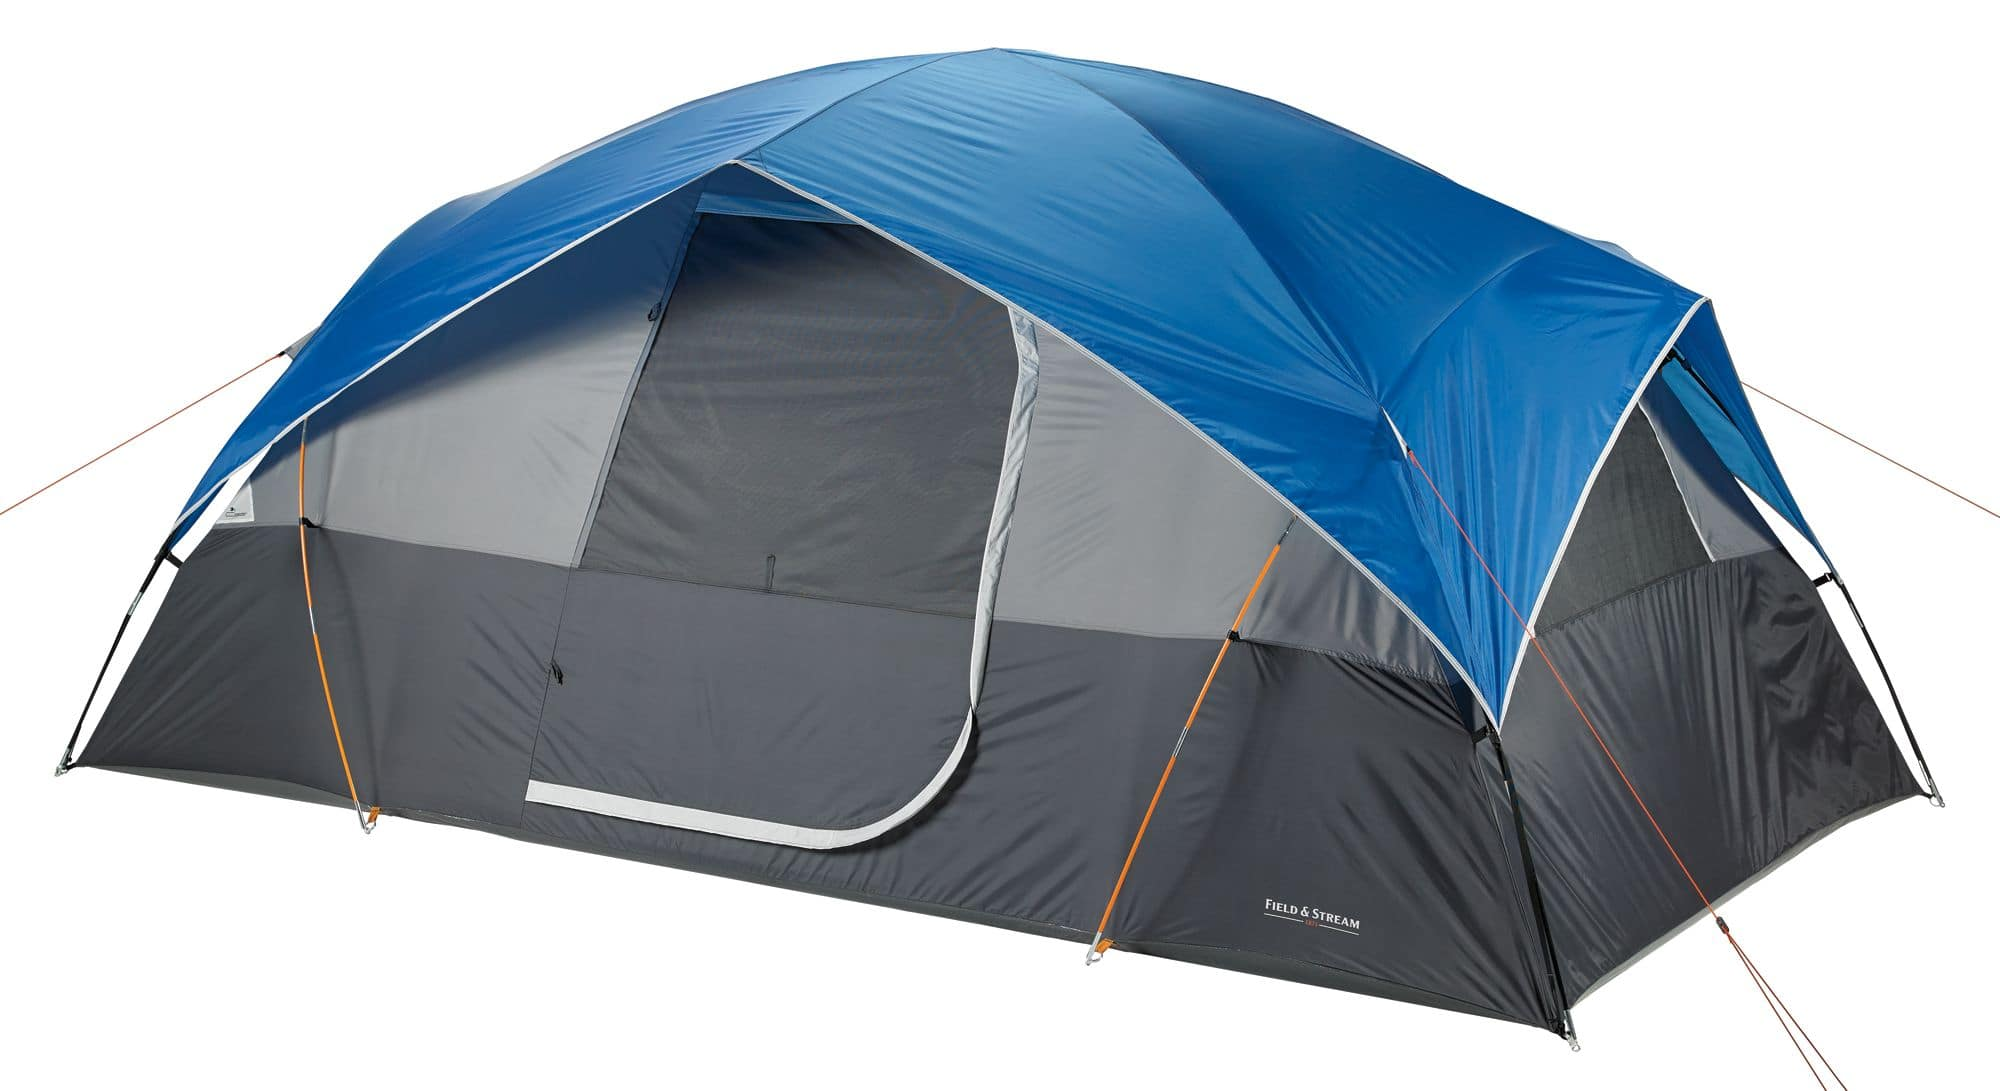 Field & Stream 8 Person Cross Vent Tent for $69.98 + Free Shipping